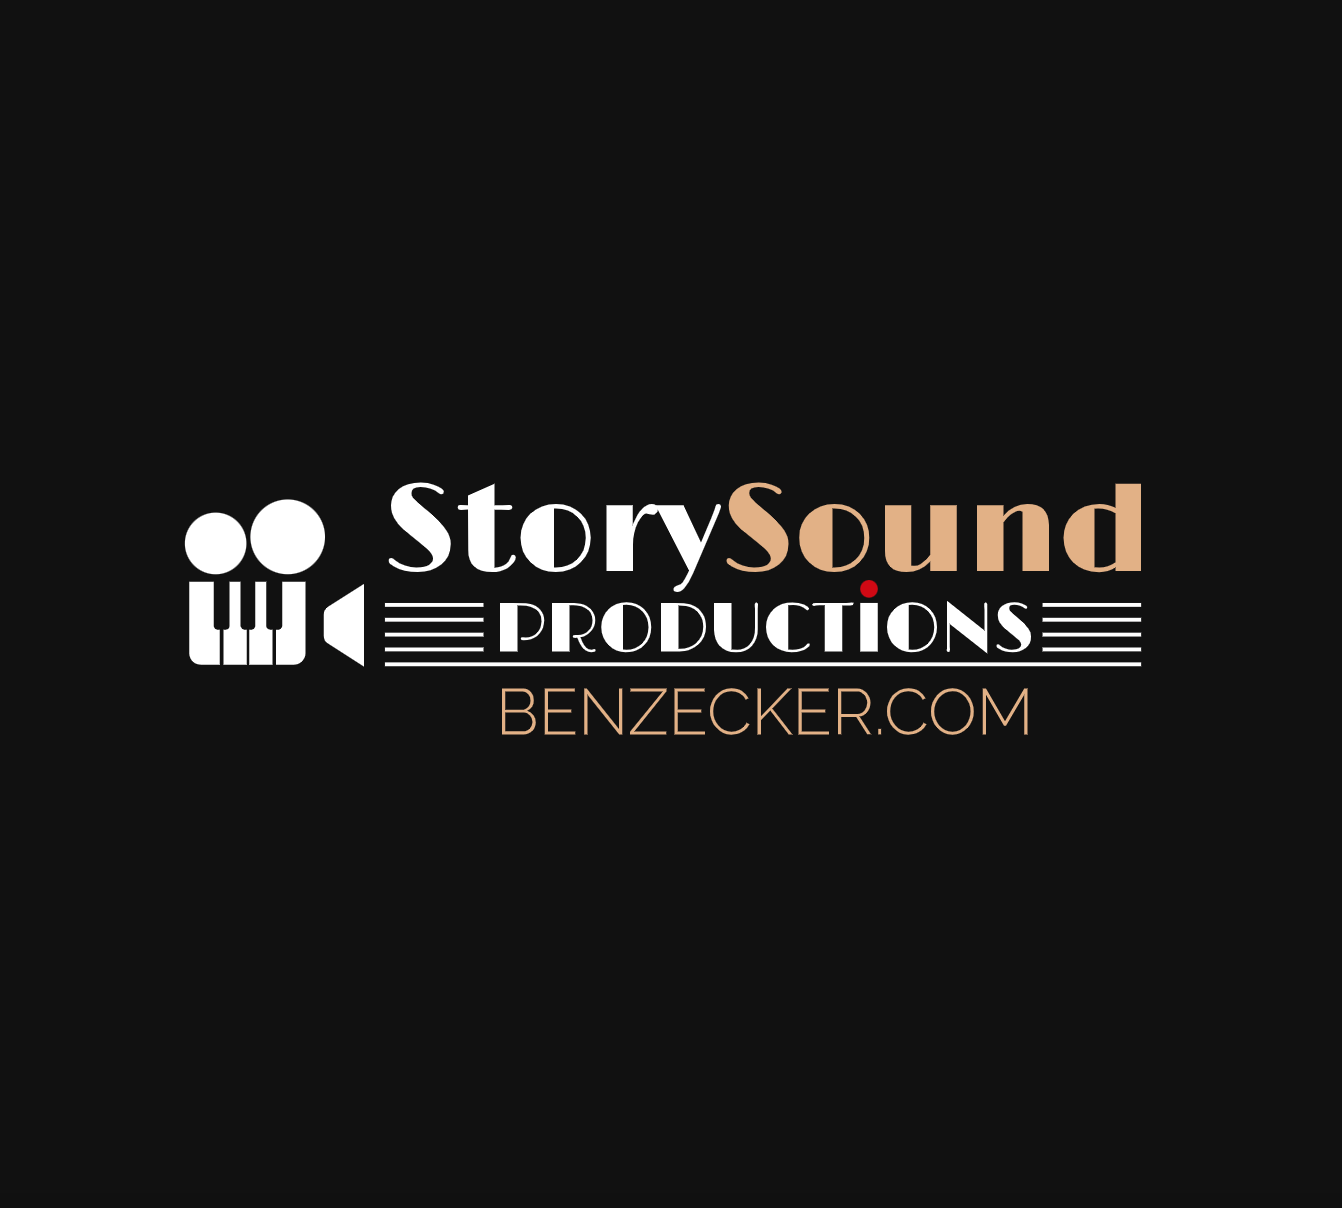 StorySound Productions